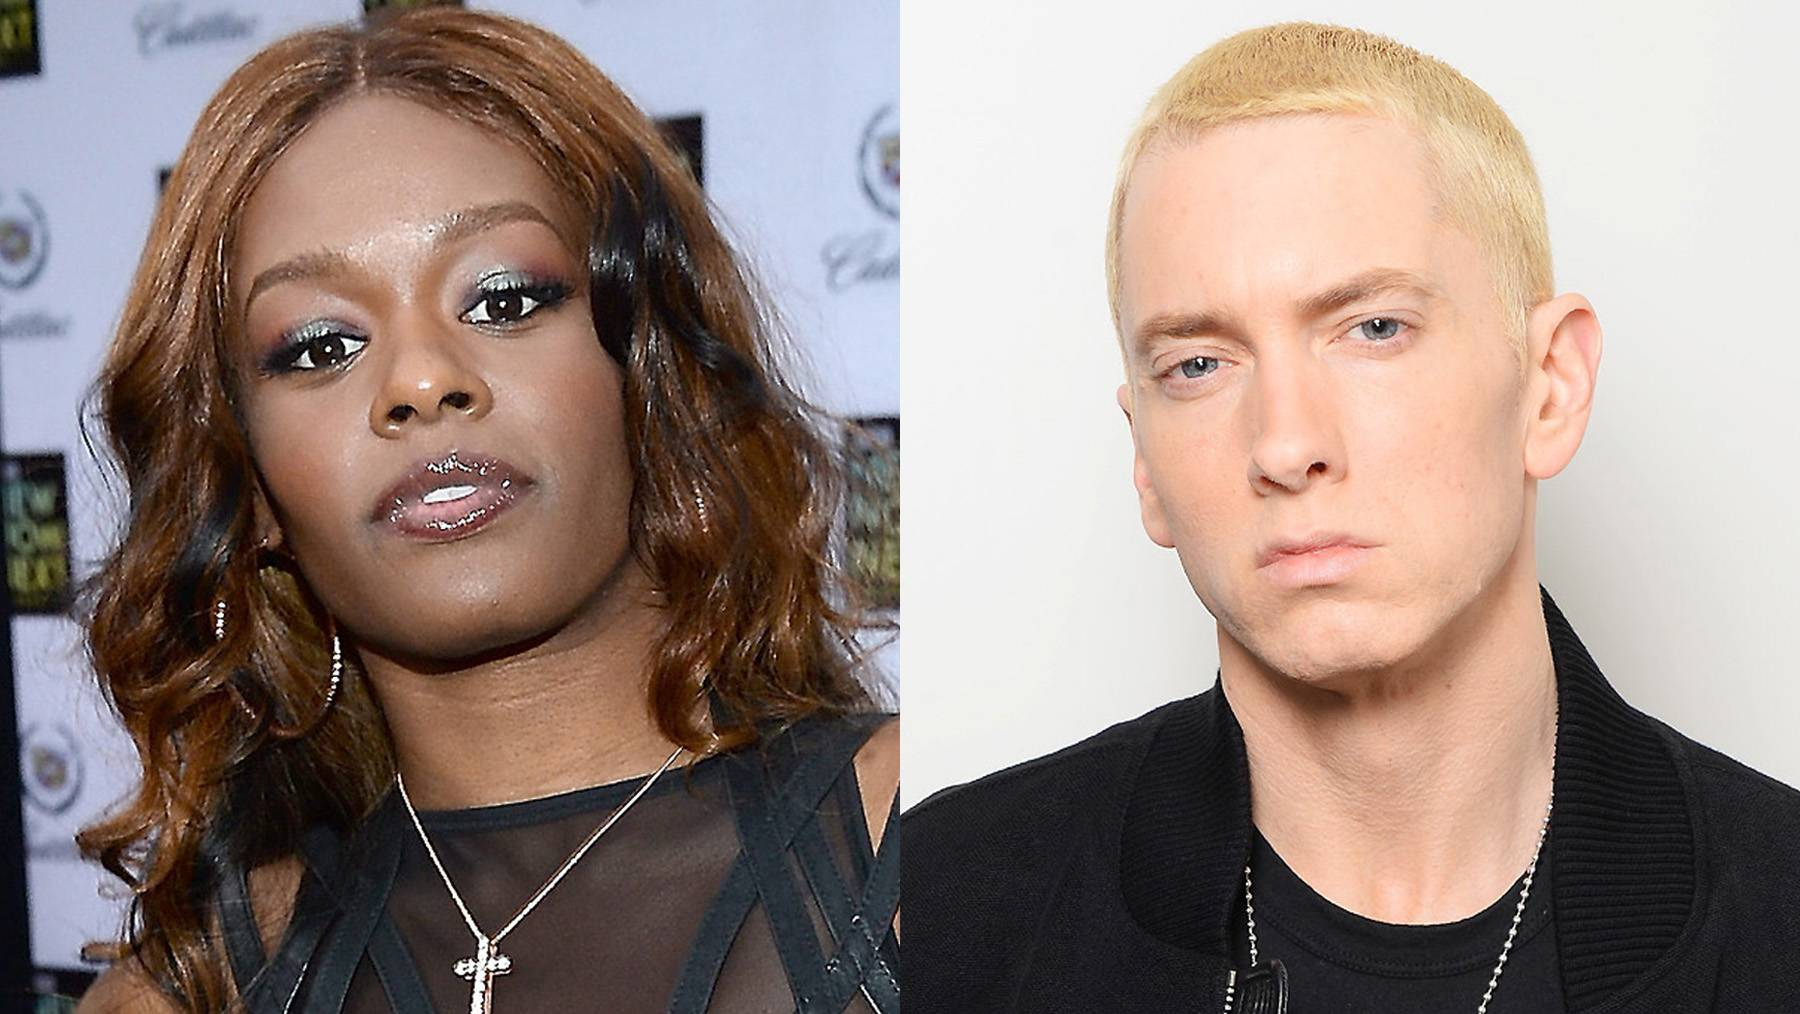 Azealia Banks vs. Eminem - Eminem is back with more of his shock value lyrics. This time herhymes that he?ll deliver a beat down to singer/songwriter Lana Del Reyand thelines didn?t sit too well withAzealia Banks. ?@LanaDelRey tell him to go back to his trailer park and eat his microwave hotpocket dinner and suck on his sisters t**ties,? she posted to Twitter.(Photos from left: Michael Buckner/Getty Images for LOGO, Dave J Hogan/Getty Images for MTV)